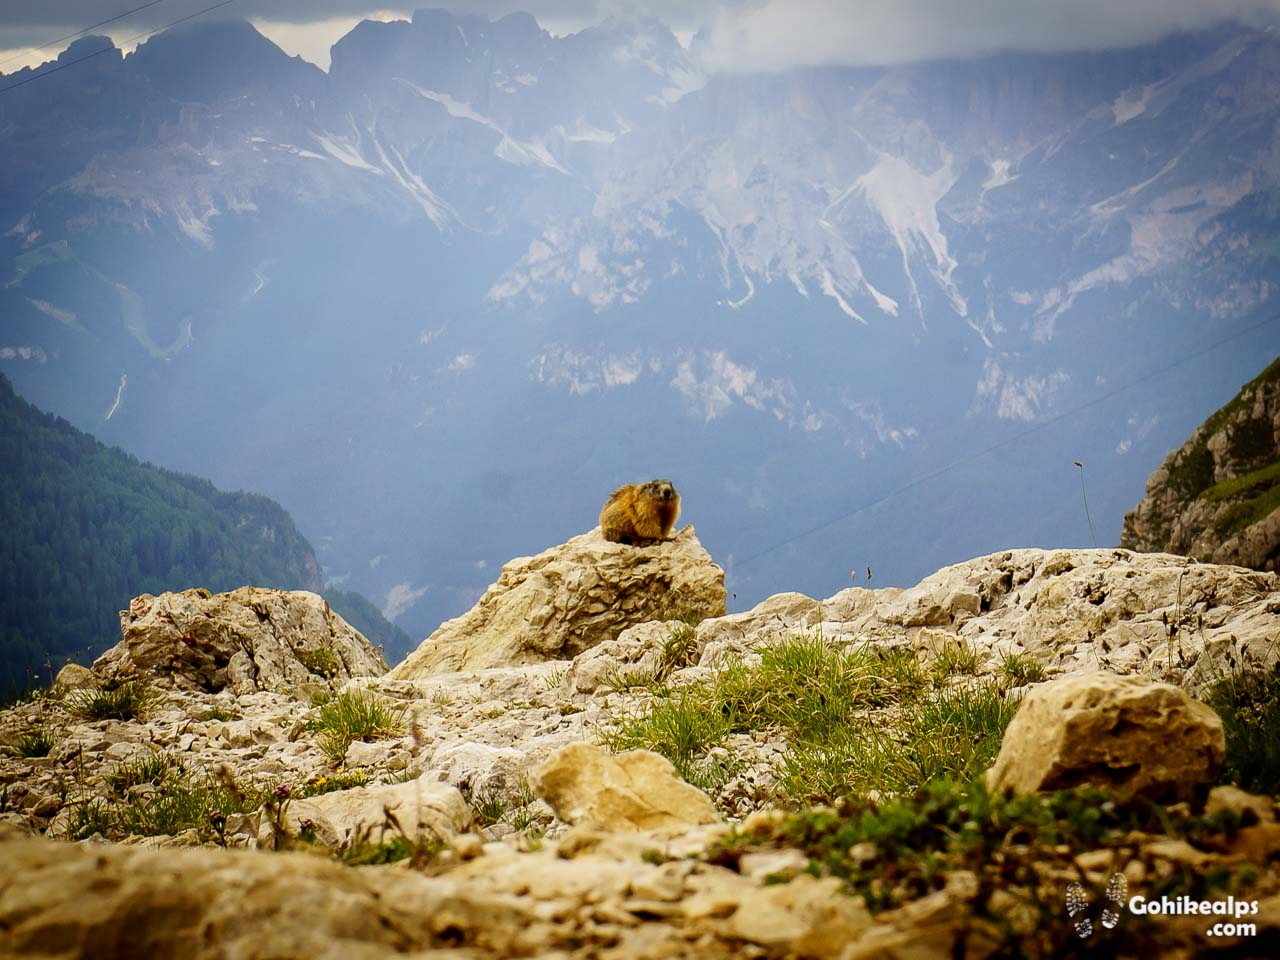 Lone Marmot Observing Us near Passo Pordoi on Dolomites Alta Via 2